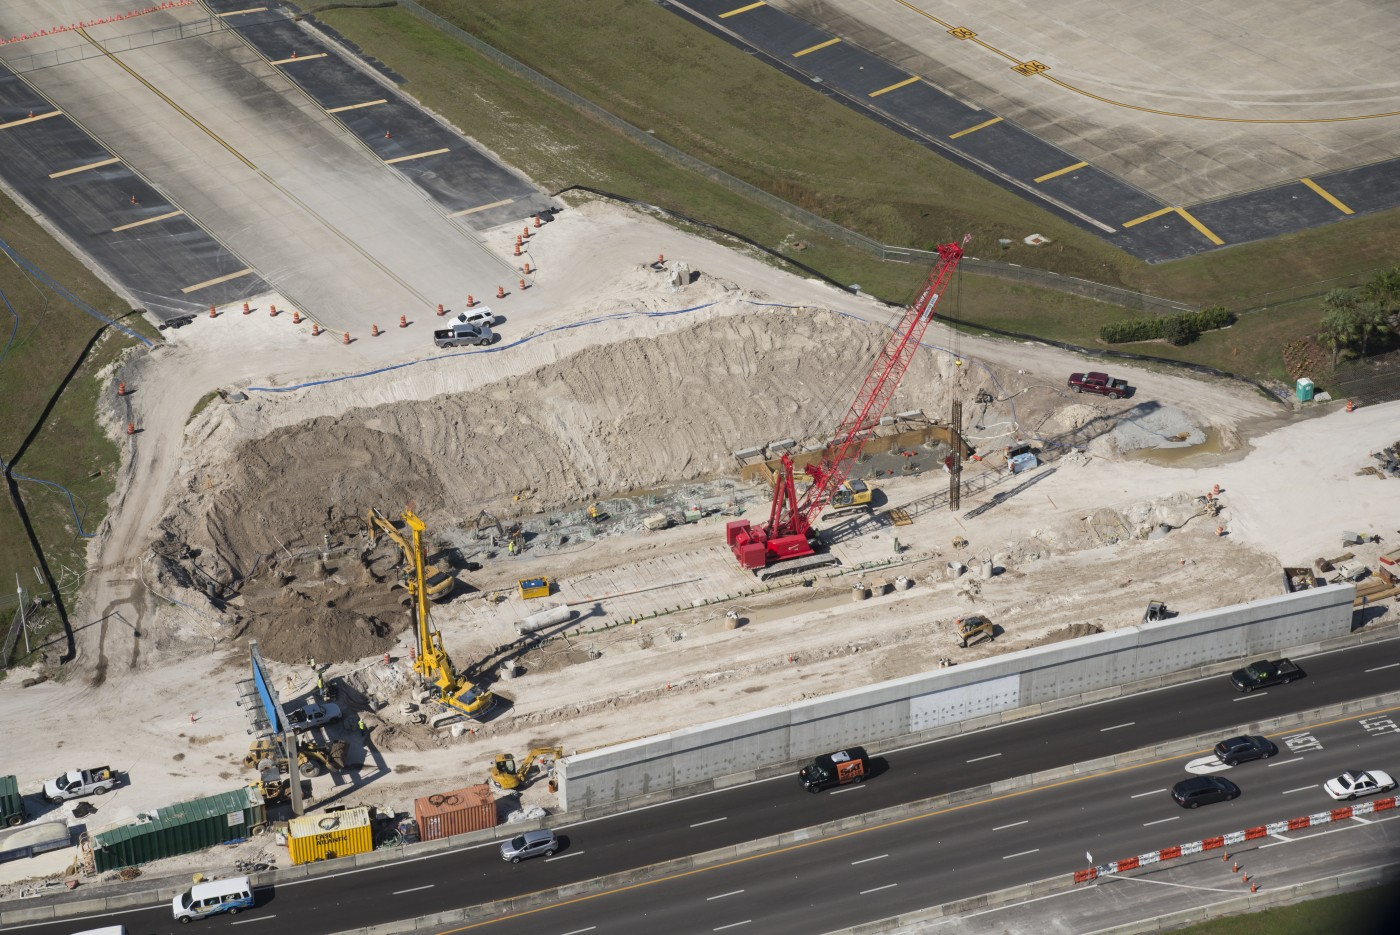 An aerial view of the drilled shafts being installed at the Tampa International Airport.